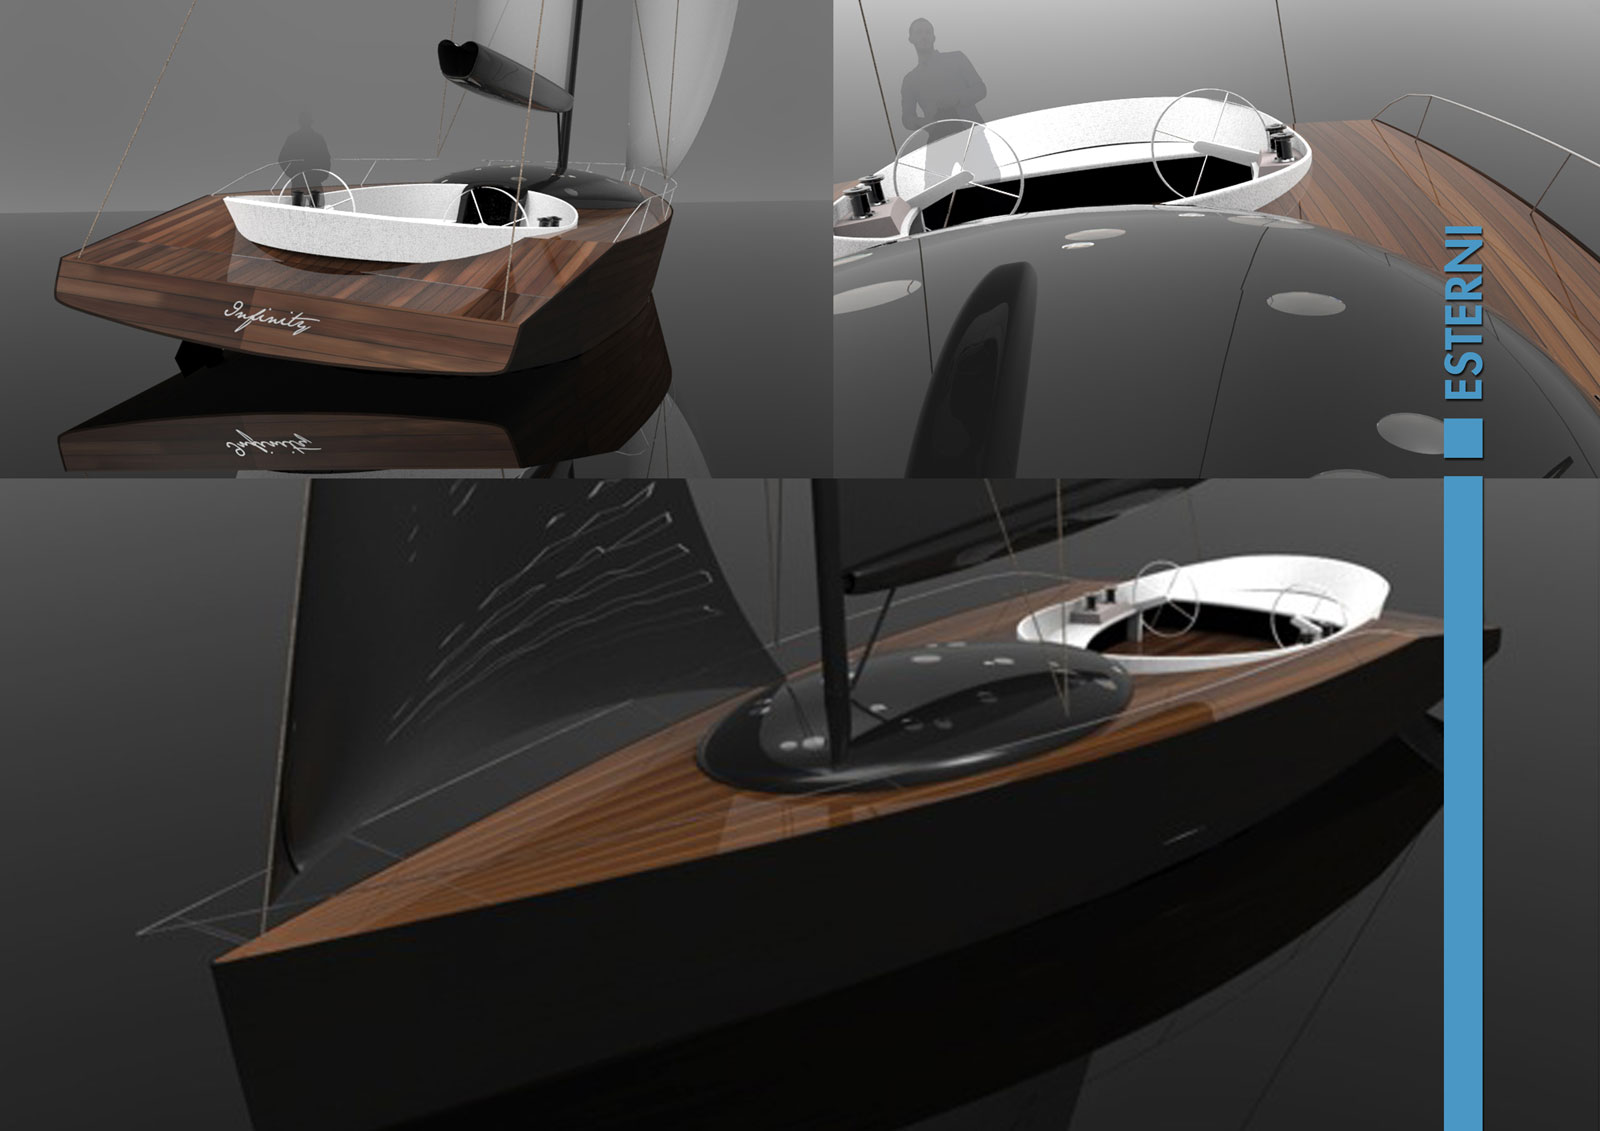 Infinity Sailing Boat Concept - Exterior Renderings